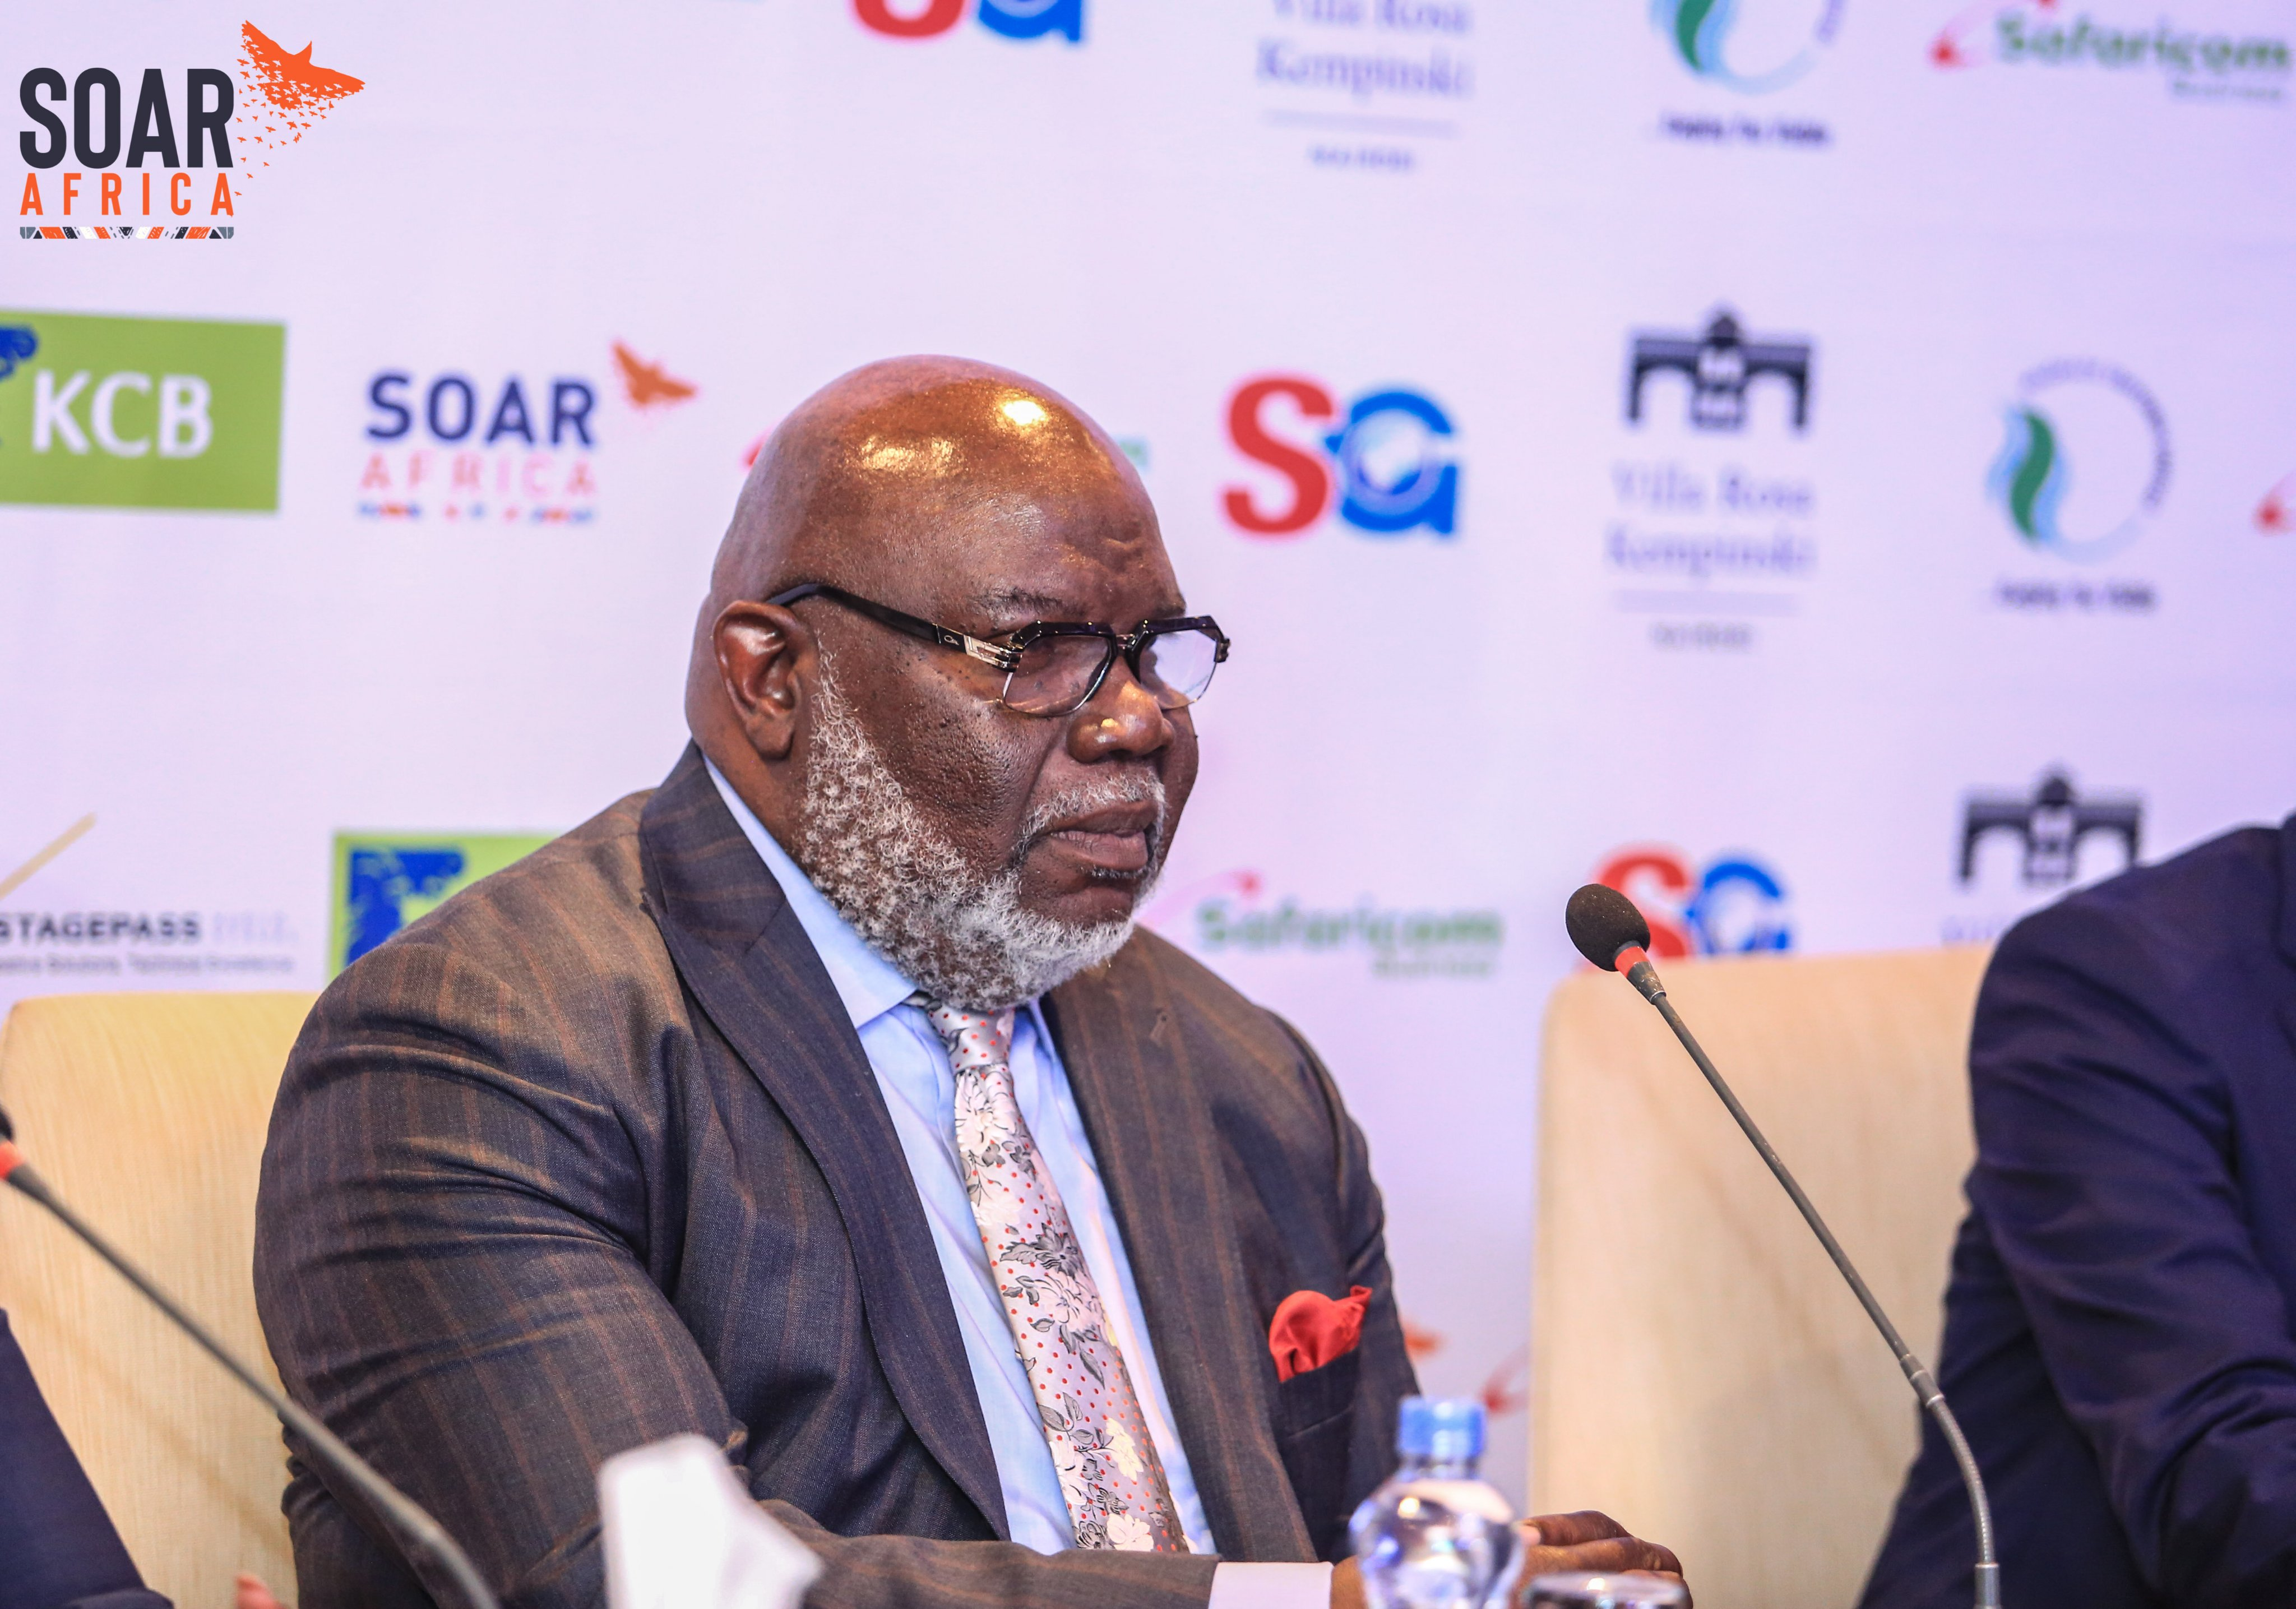 Bishop T.D. Jakes has arrived in Kenya to much fanfare, which in turn has cast a shadow on his fellow speakers at the SOAR Africa Leadership Summit. www.businesstodaykenya.co.ke